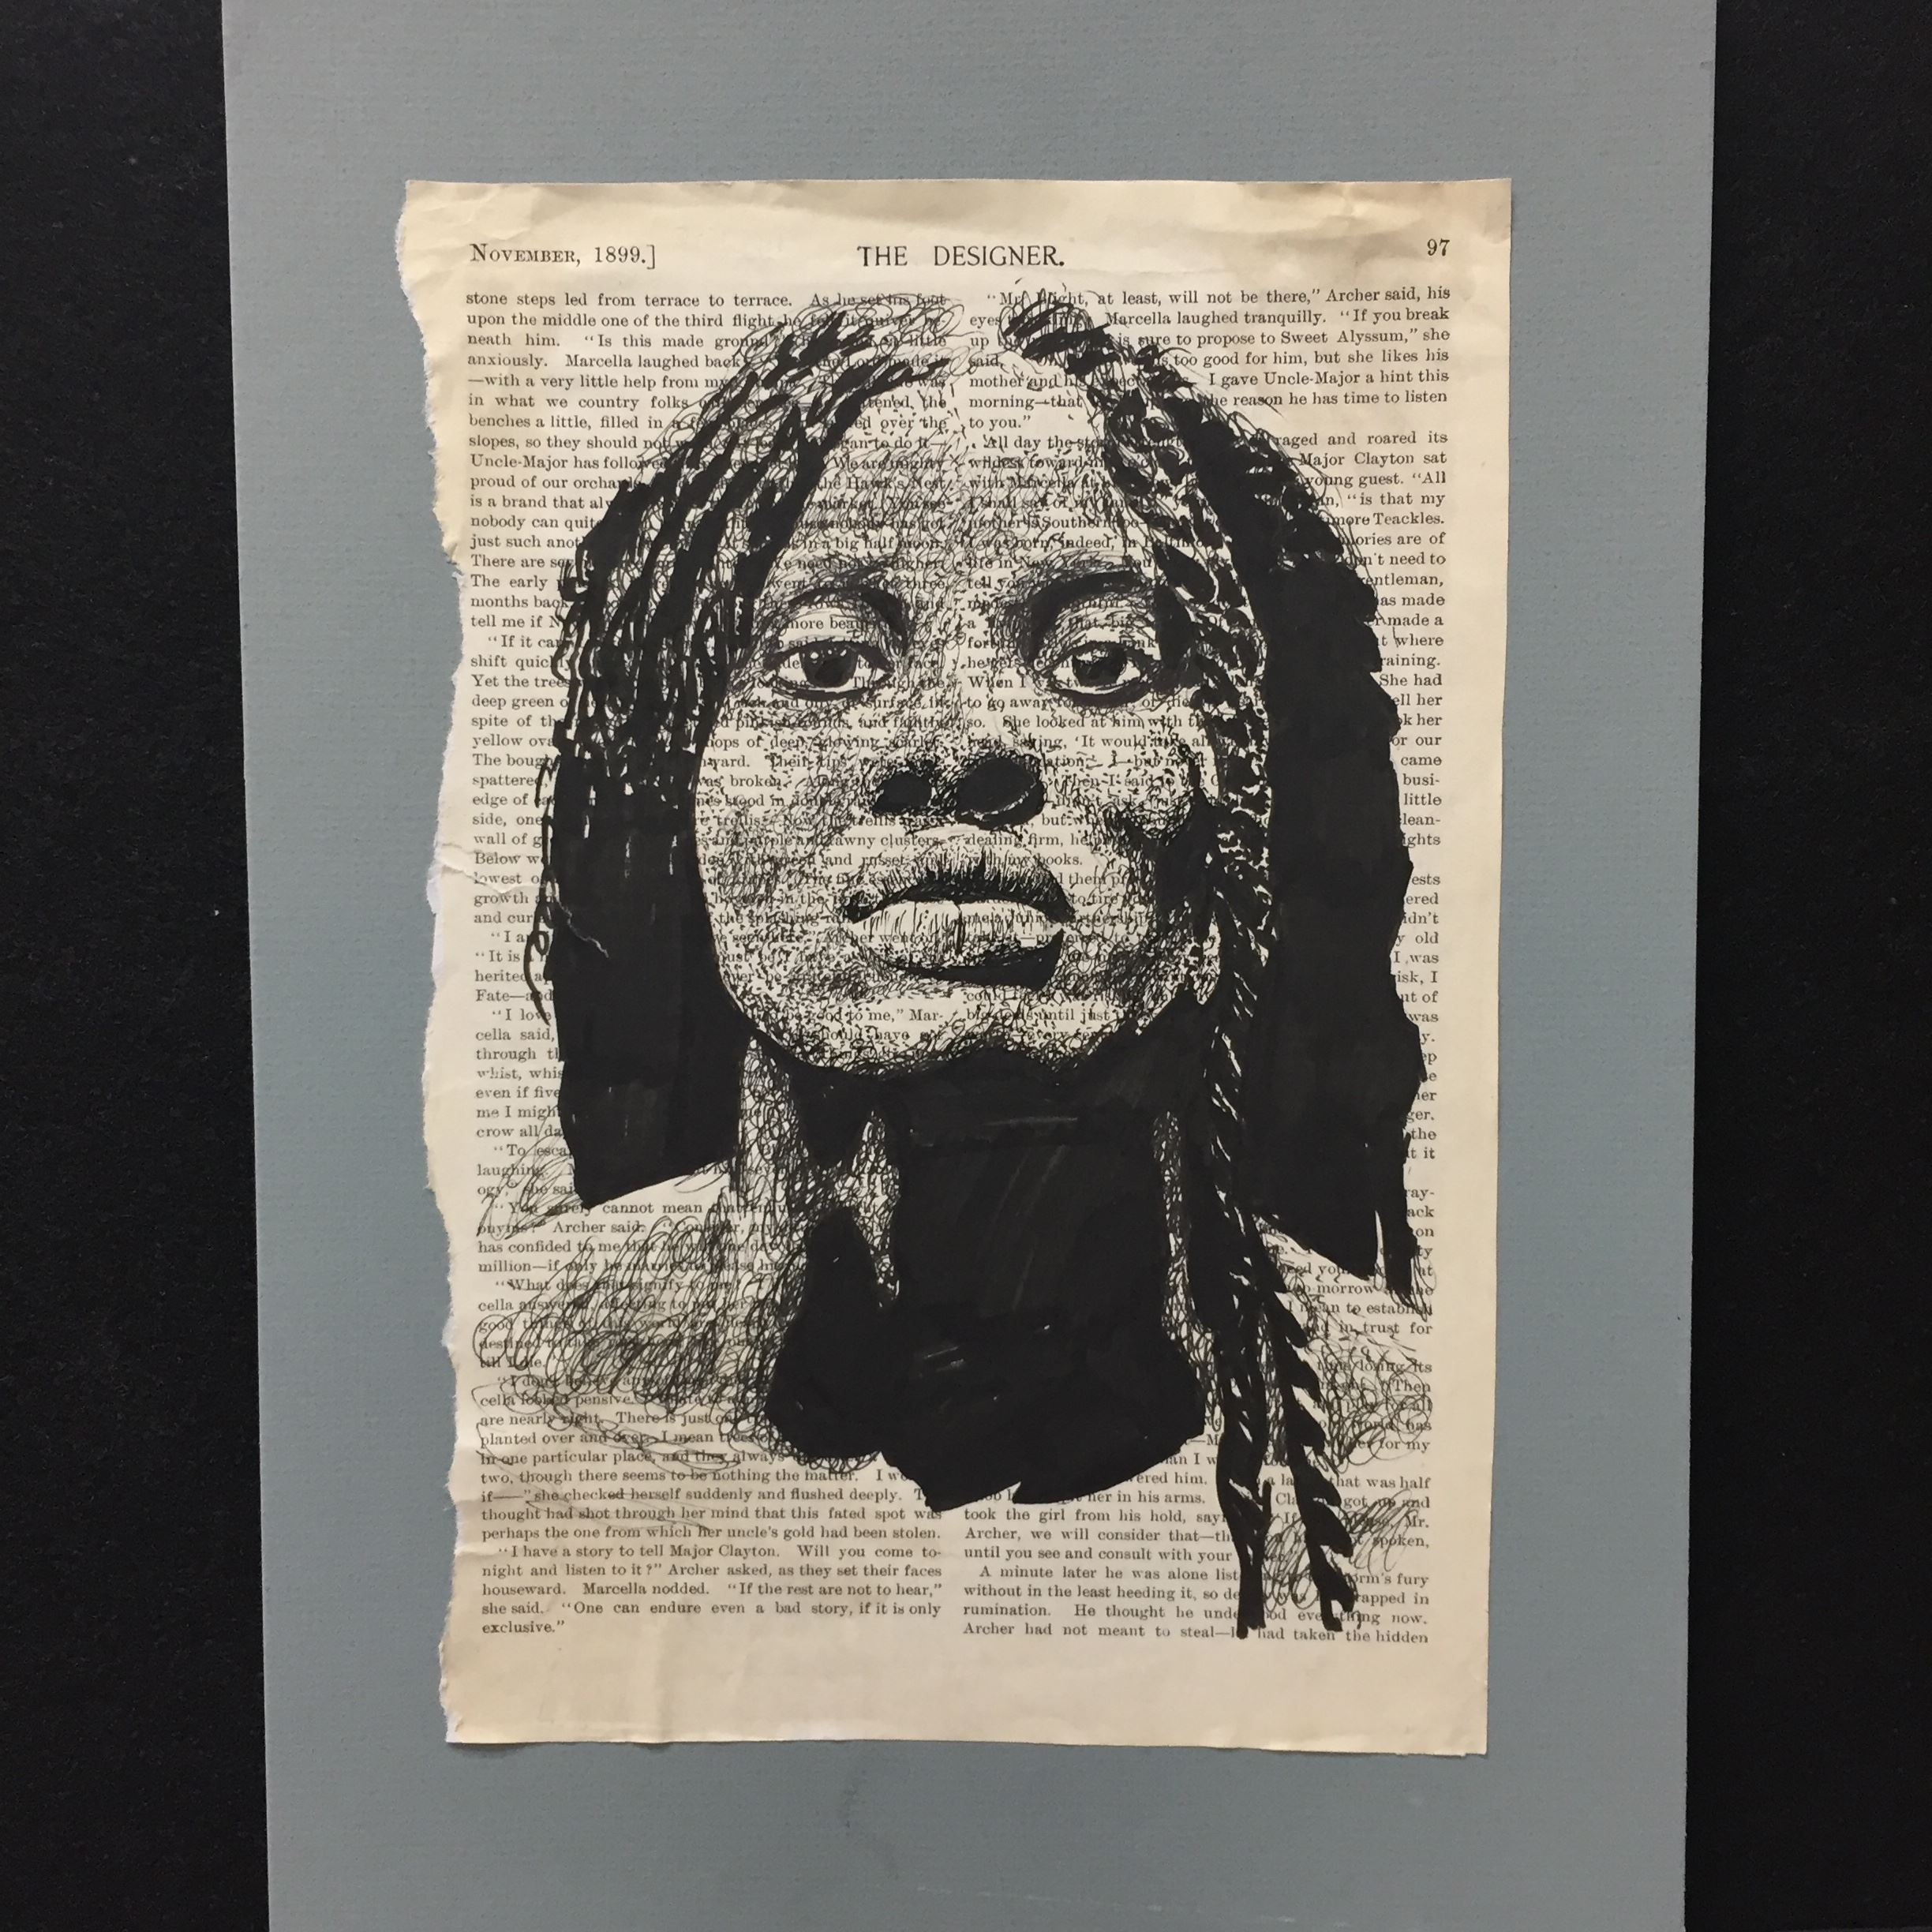 Black and white sketch of woman's face on printed text